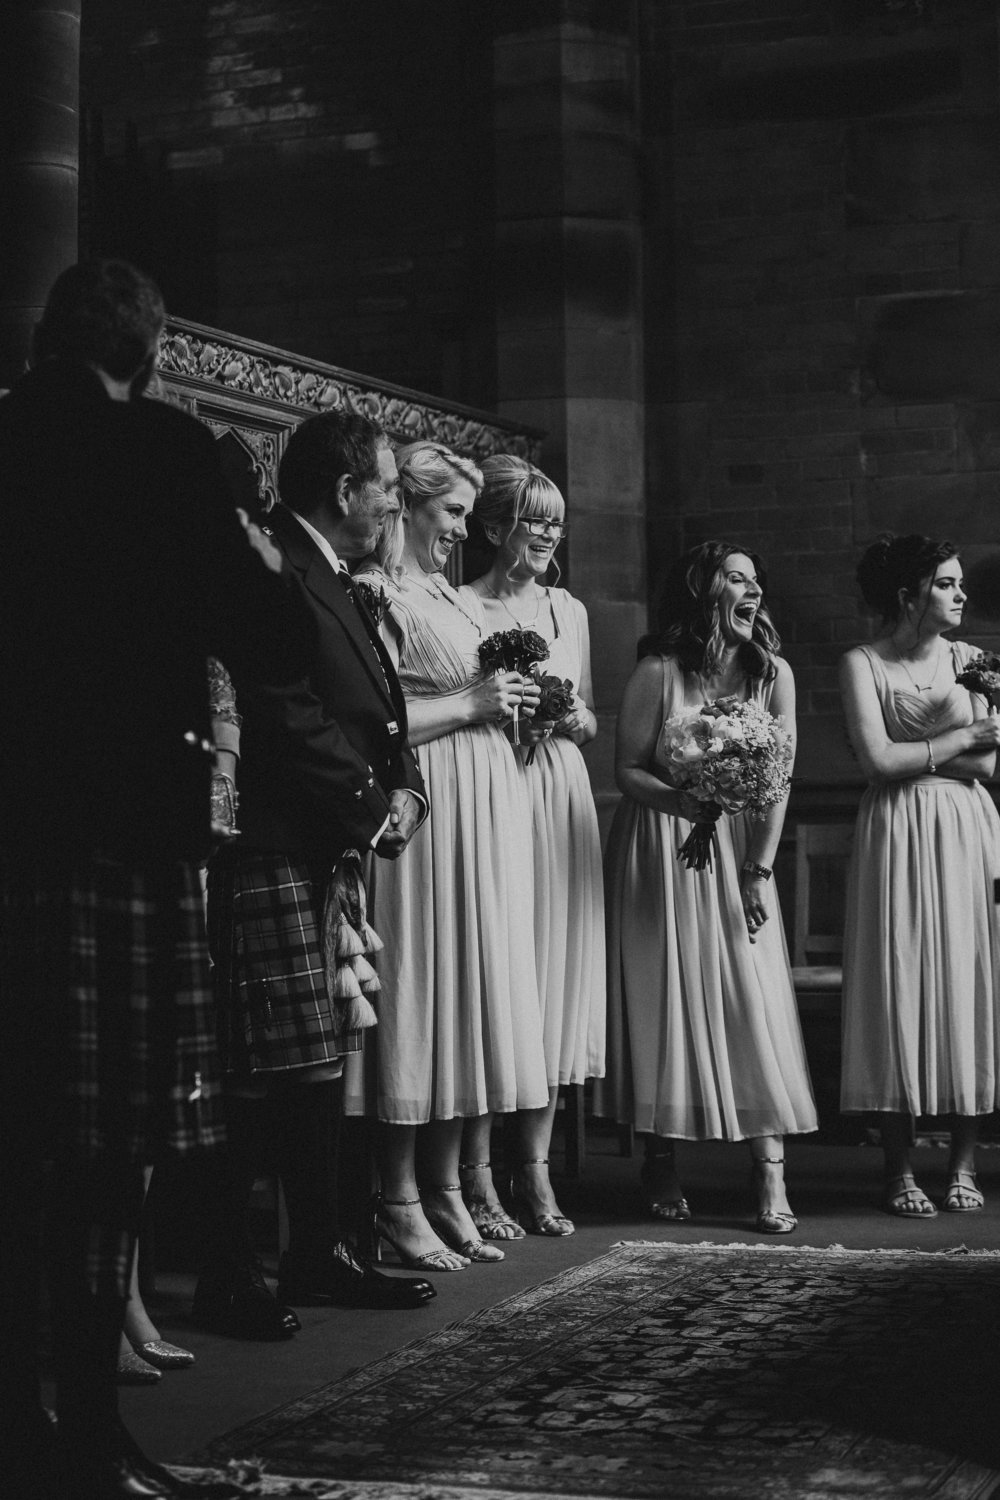 PJ_PHILLIPS_PHOTOGRAPHY_ERIKA_&_BRUCE_ALTERNATIVE_GLASGOW_CITY_WEDDING_55.jpg